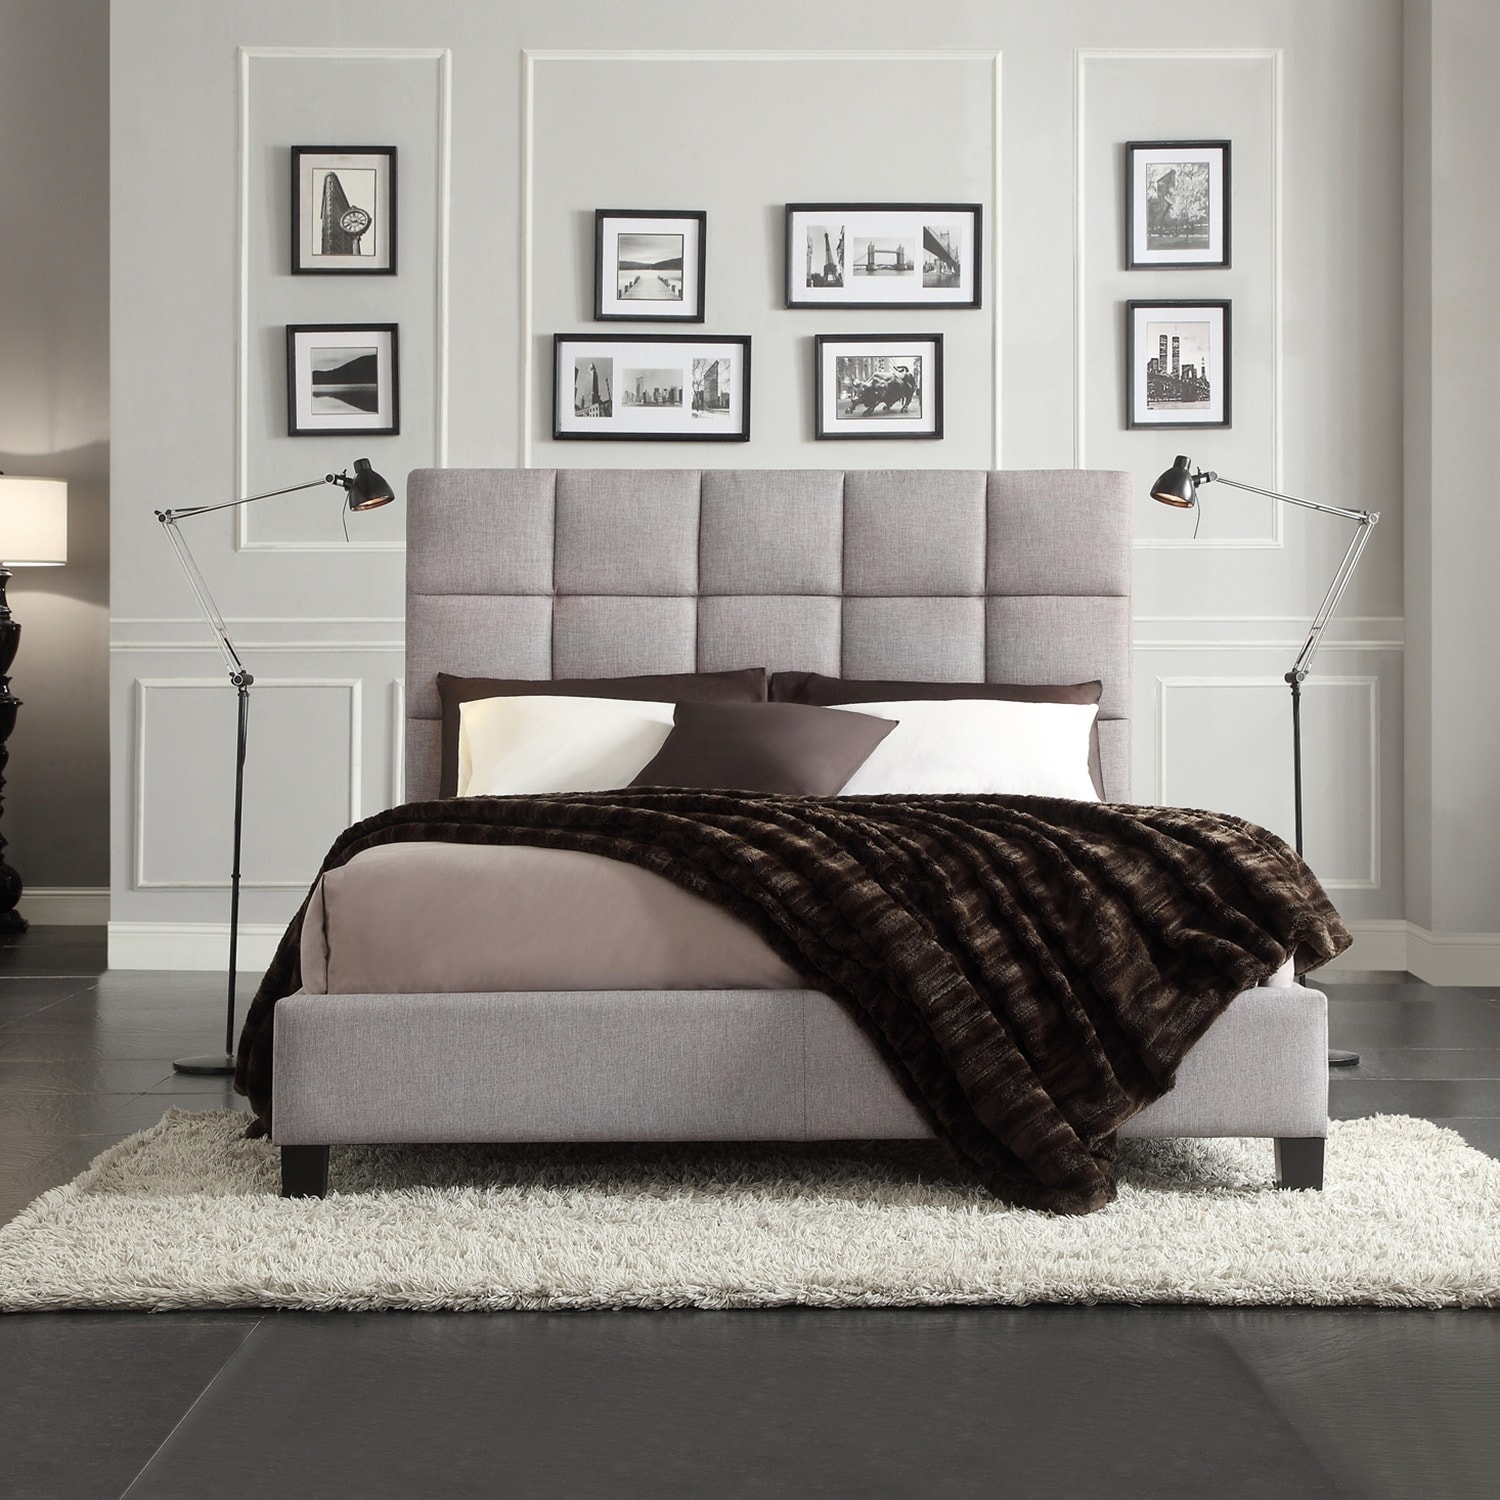 Fenton Column Upholstered Platform Bed by iNSPIRE Q Modern - Free Shipping  Today - Overstock.com - 13407030